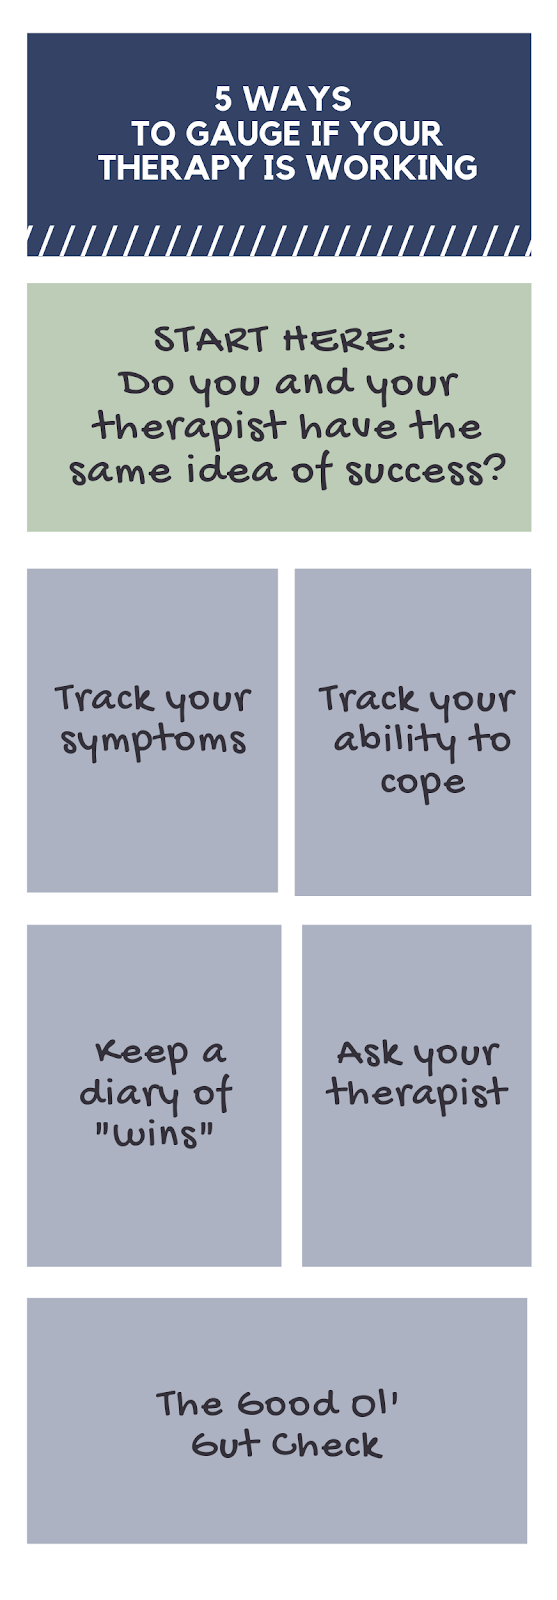 Copy of 5 Ways to Gauge If Your Therapy Is Working (1).png